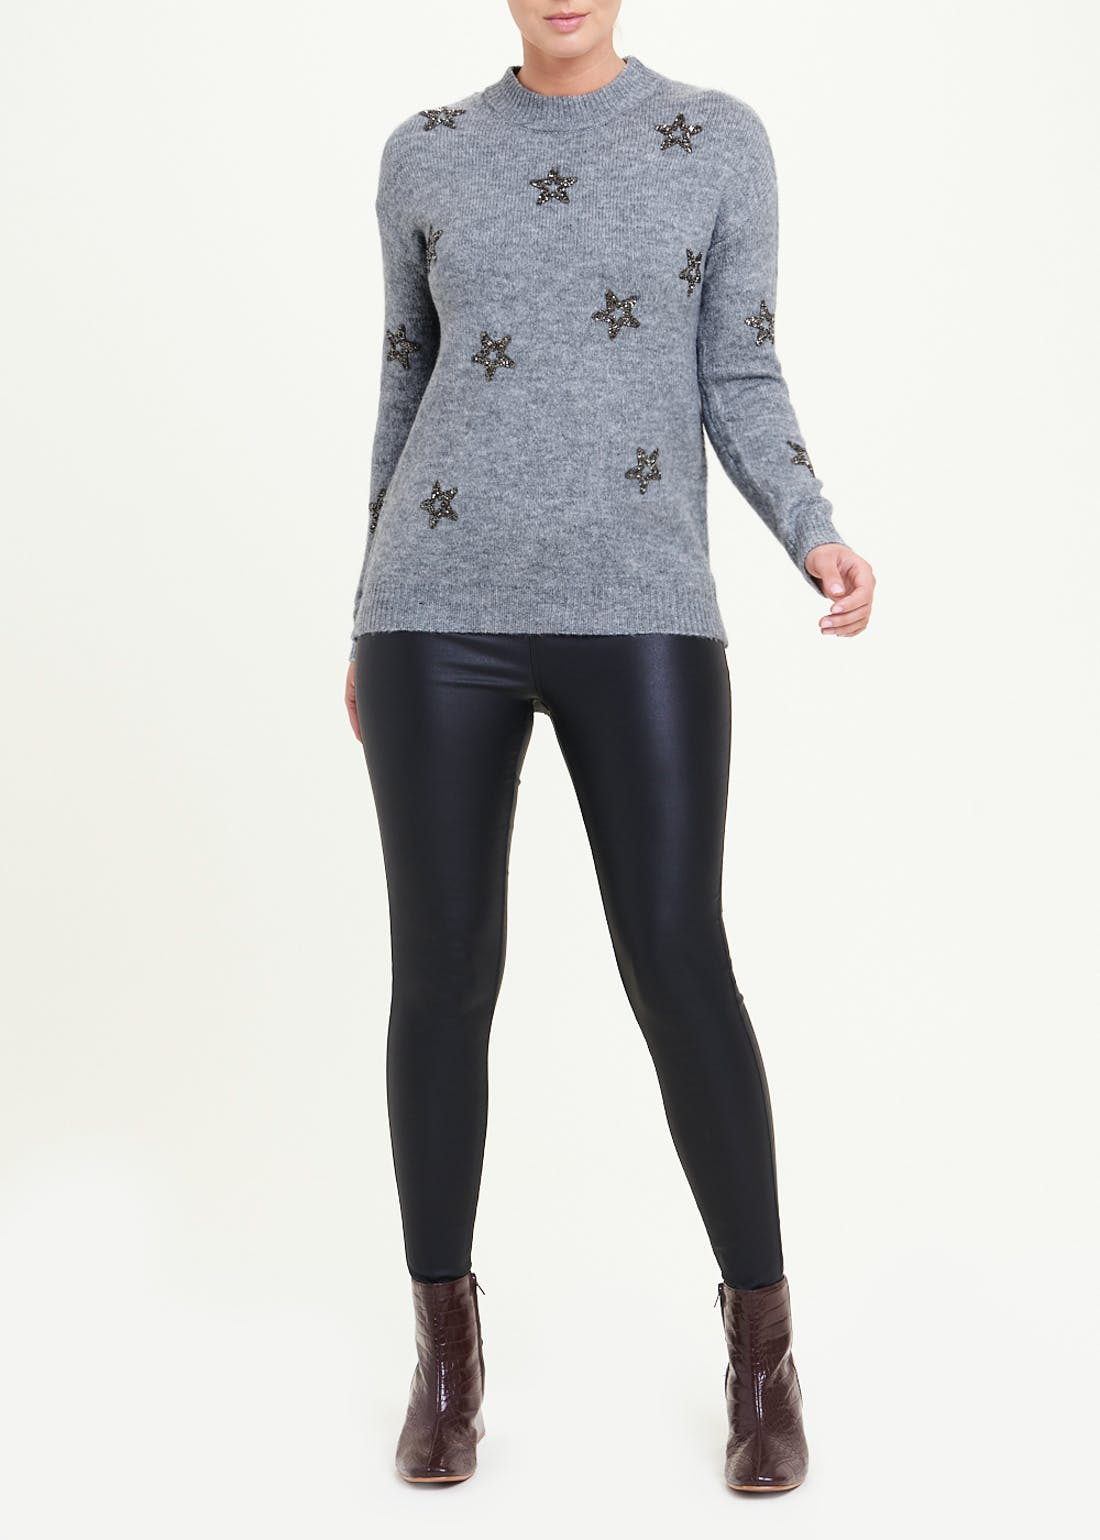 Beaded Star Jumper